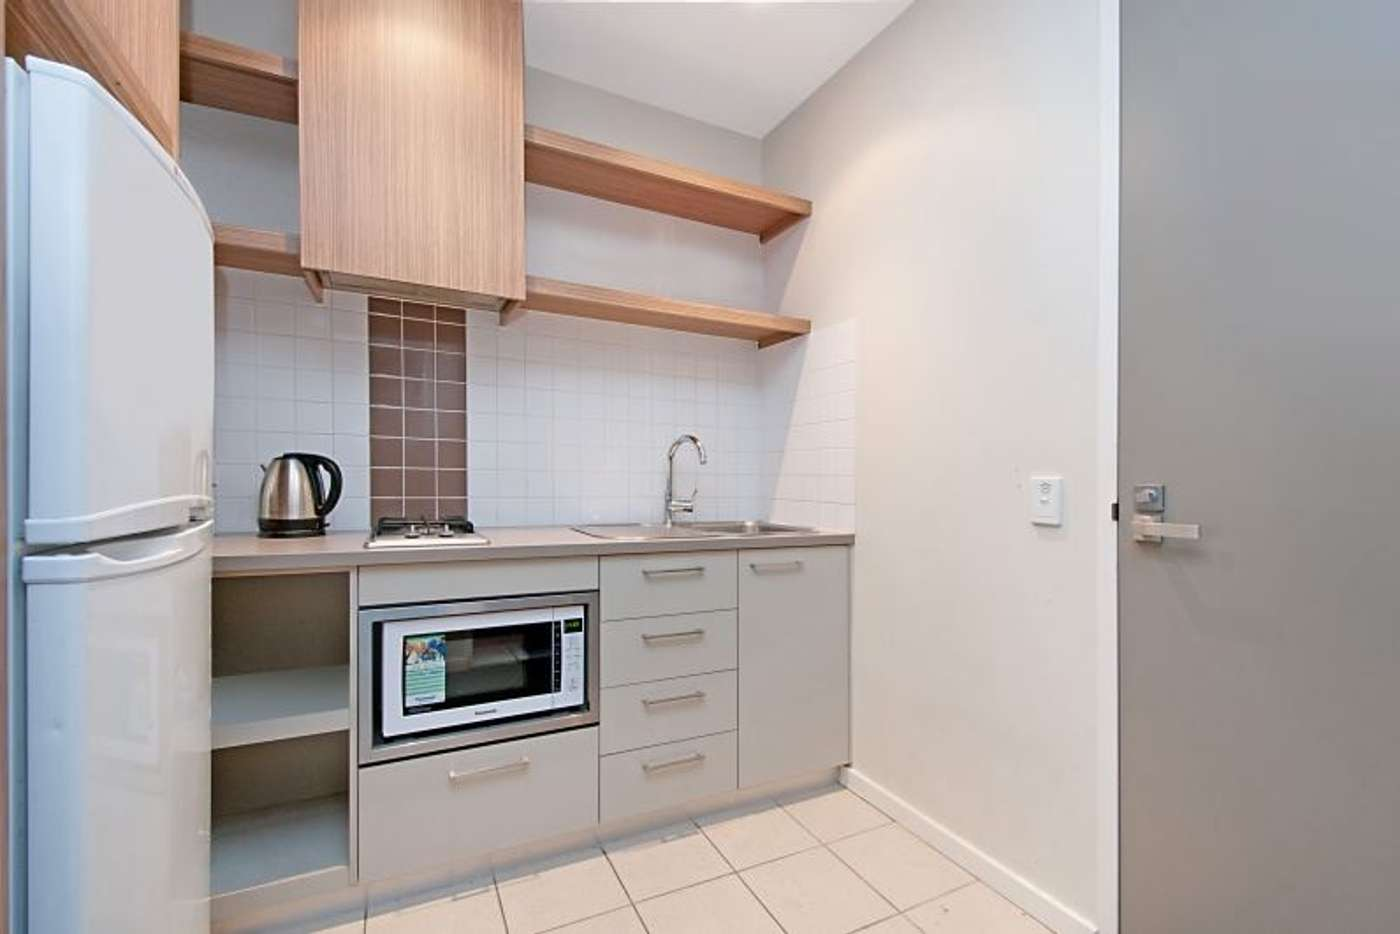 Main view of Homely apartment listing, 201/23 King William Street, Adelaide SA 5000